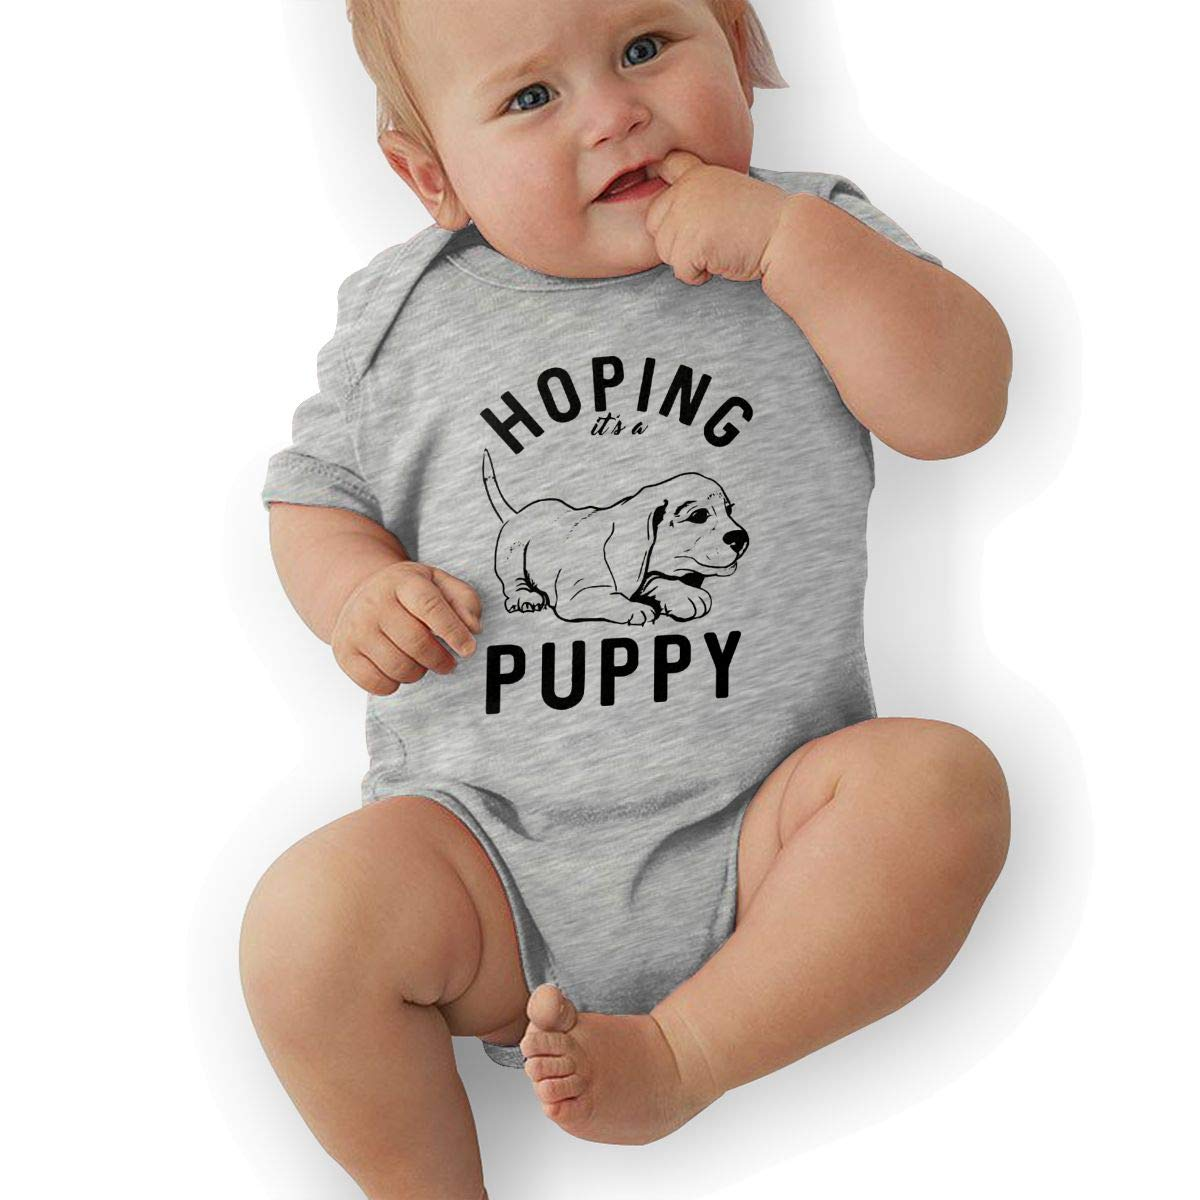 BONLOR Hoping Puppy Baby Boys Girls Jumpsuits Short Sleeve Romper Bodysuit Bodysuit Jumpsuit Outfits Gray